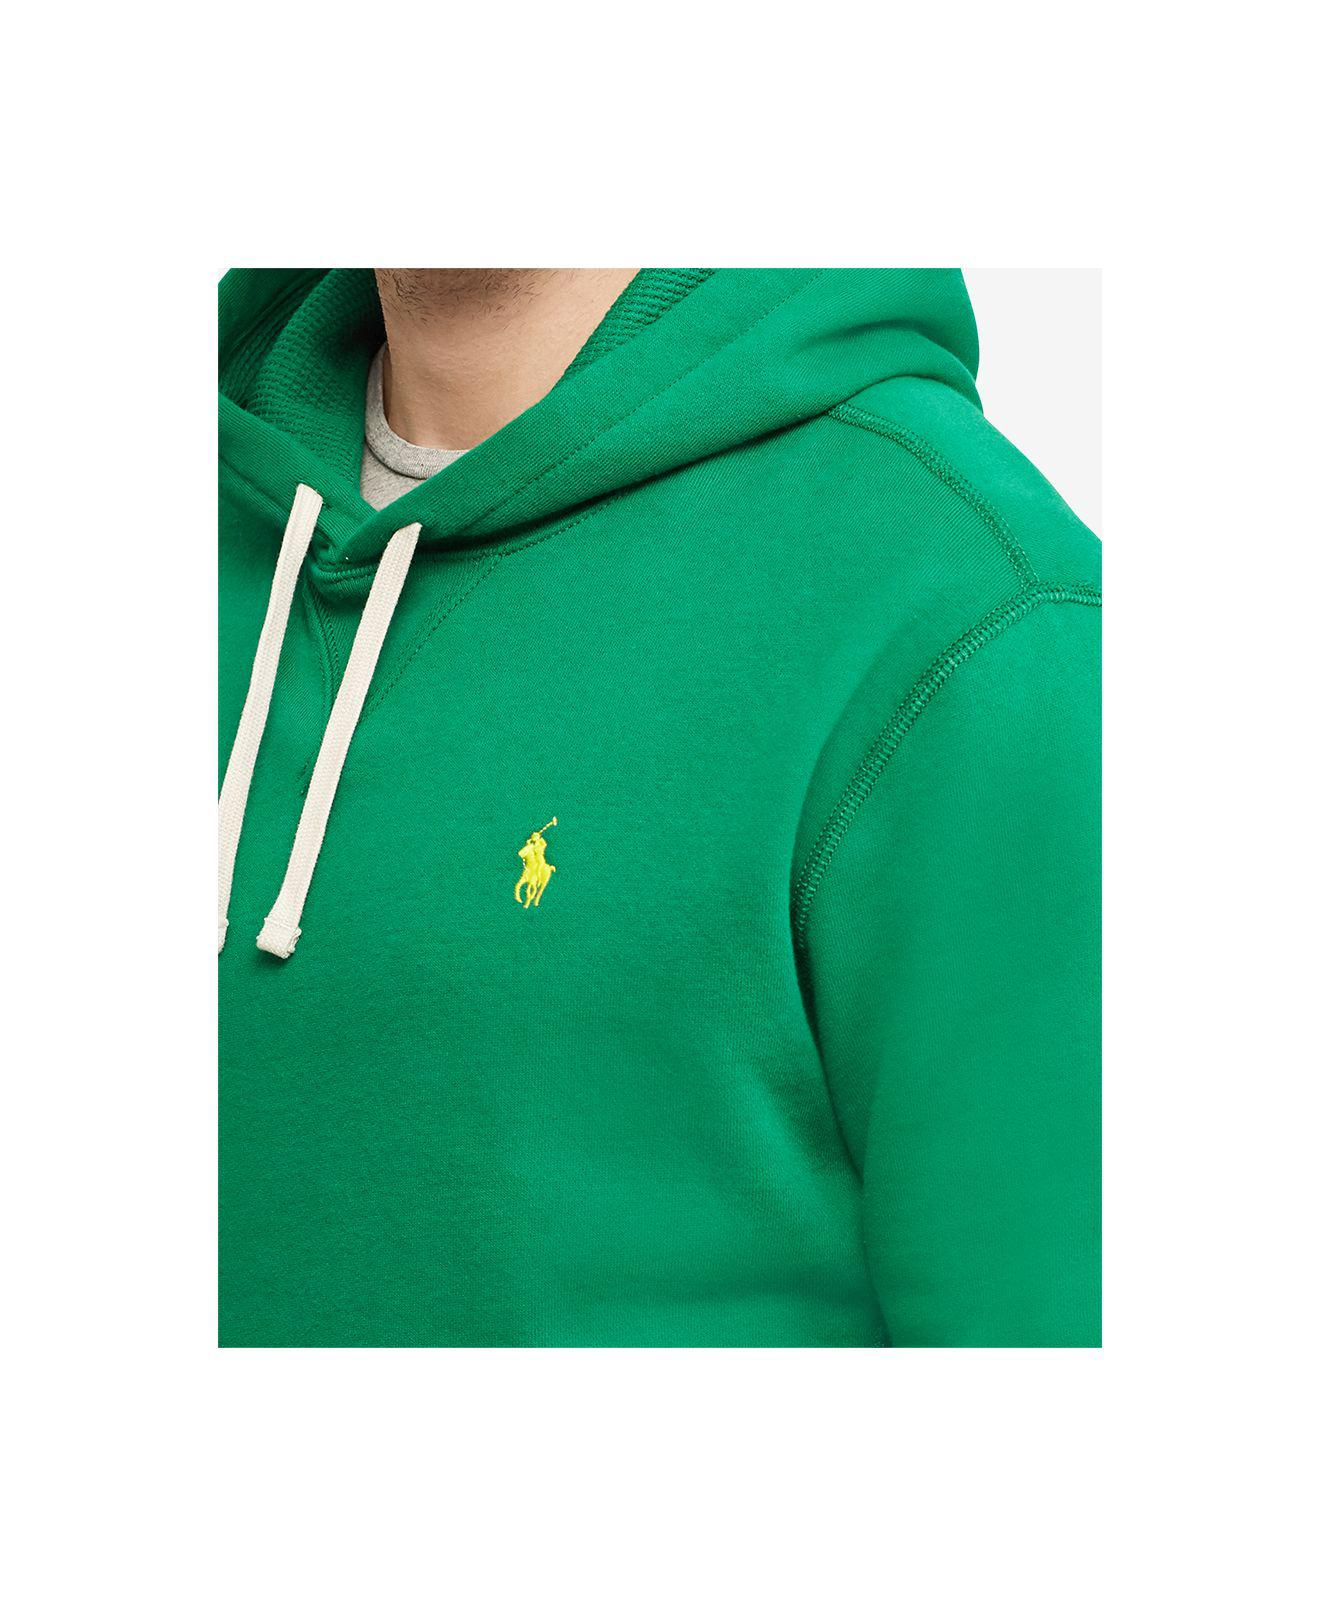 60cf22d6016b ... usa lyst polo ralph lauren fleece hoodie in green for men 35017 49337